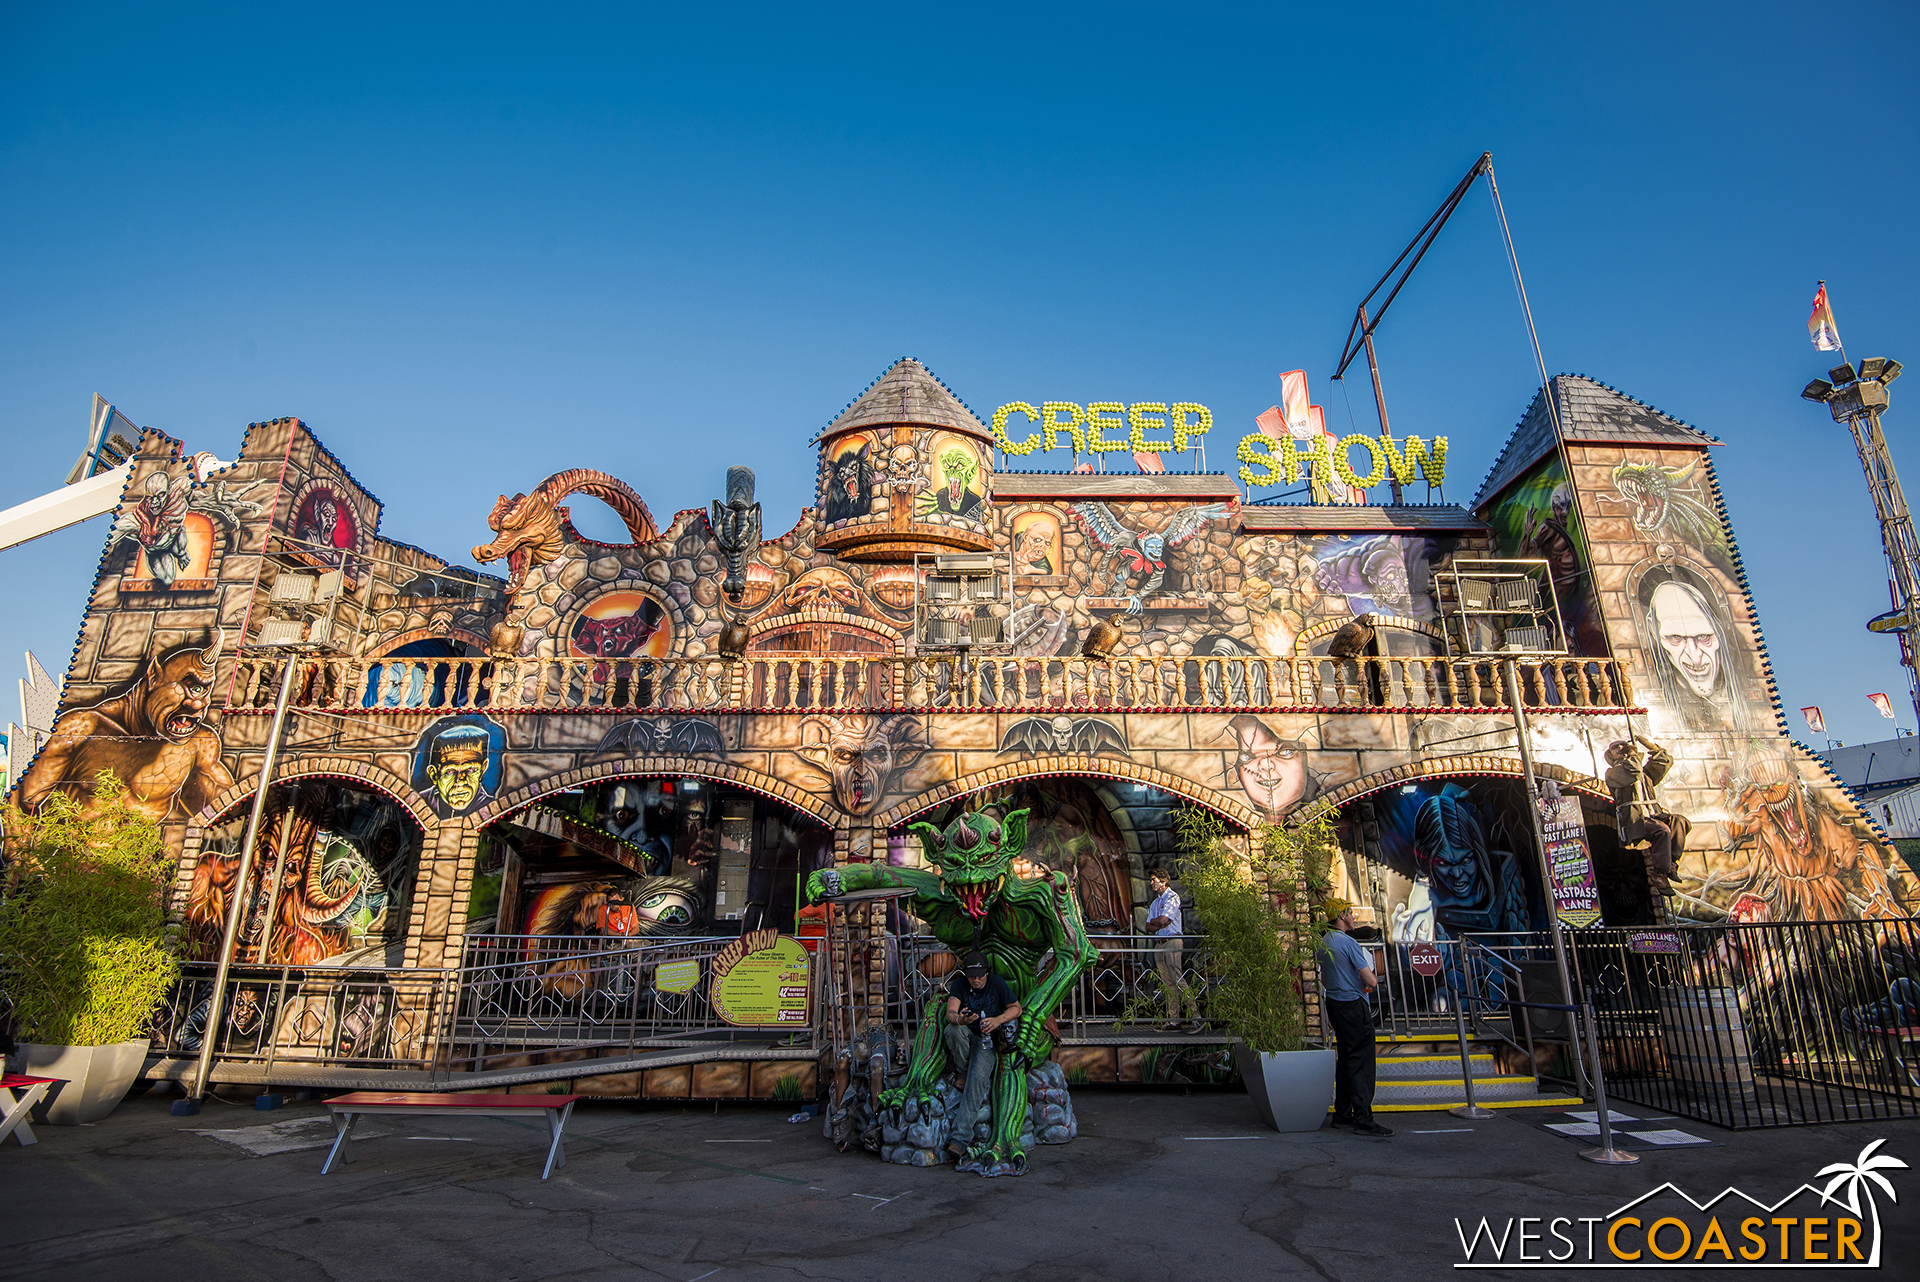 Of course, other classic rides still abound, like the Creep Show haunted house dark ride.